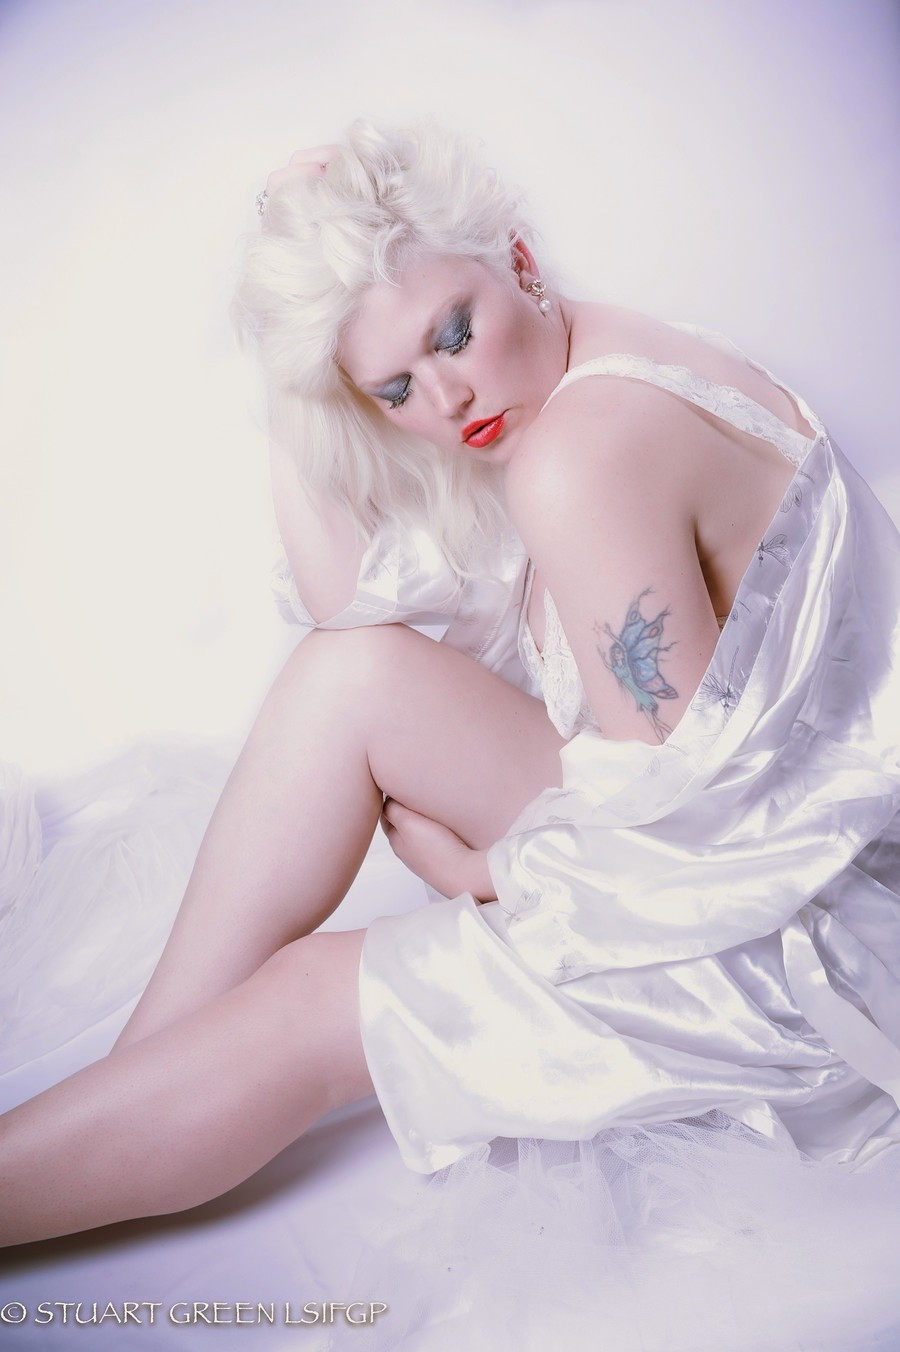 soft / Photography by Stuart Green-Photography, Model Lelly D / Uploaded 9th July 2014 @ 08:42 PM